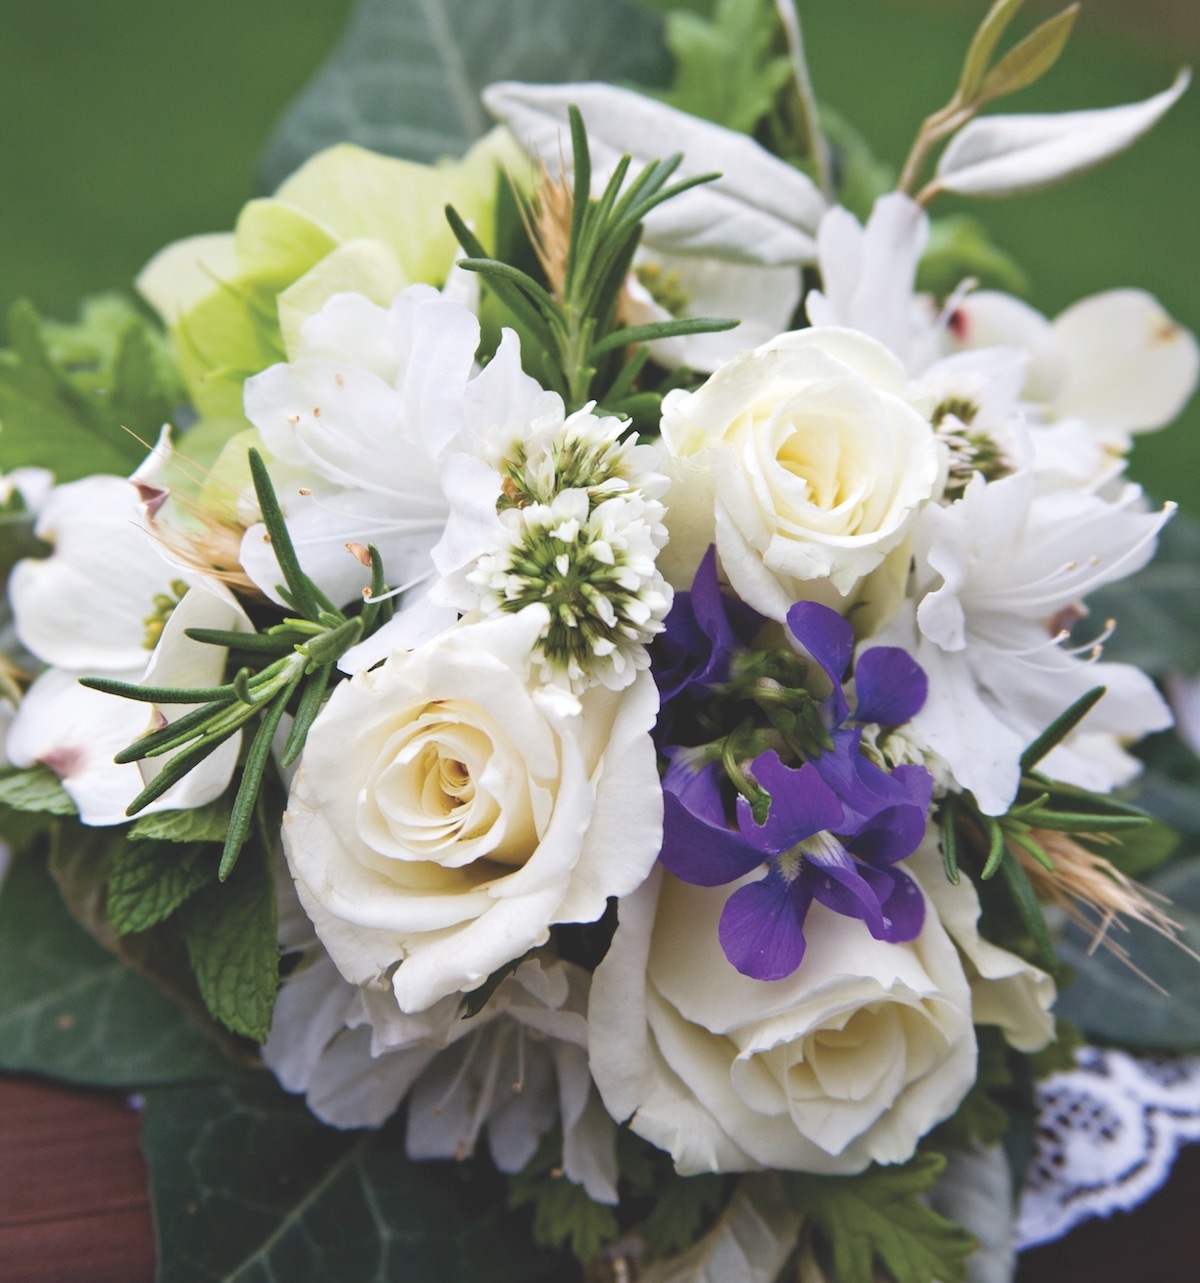 The symbolic meanings of flowers and herbs flower magazine white tussie mussie wedding flowers izmirmasajfo